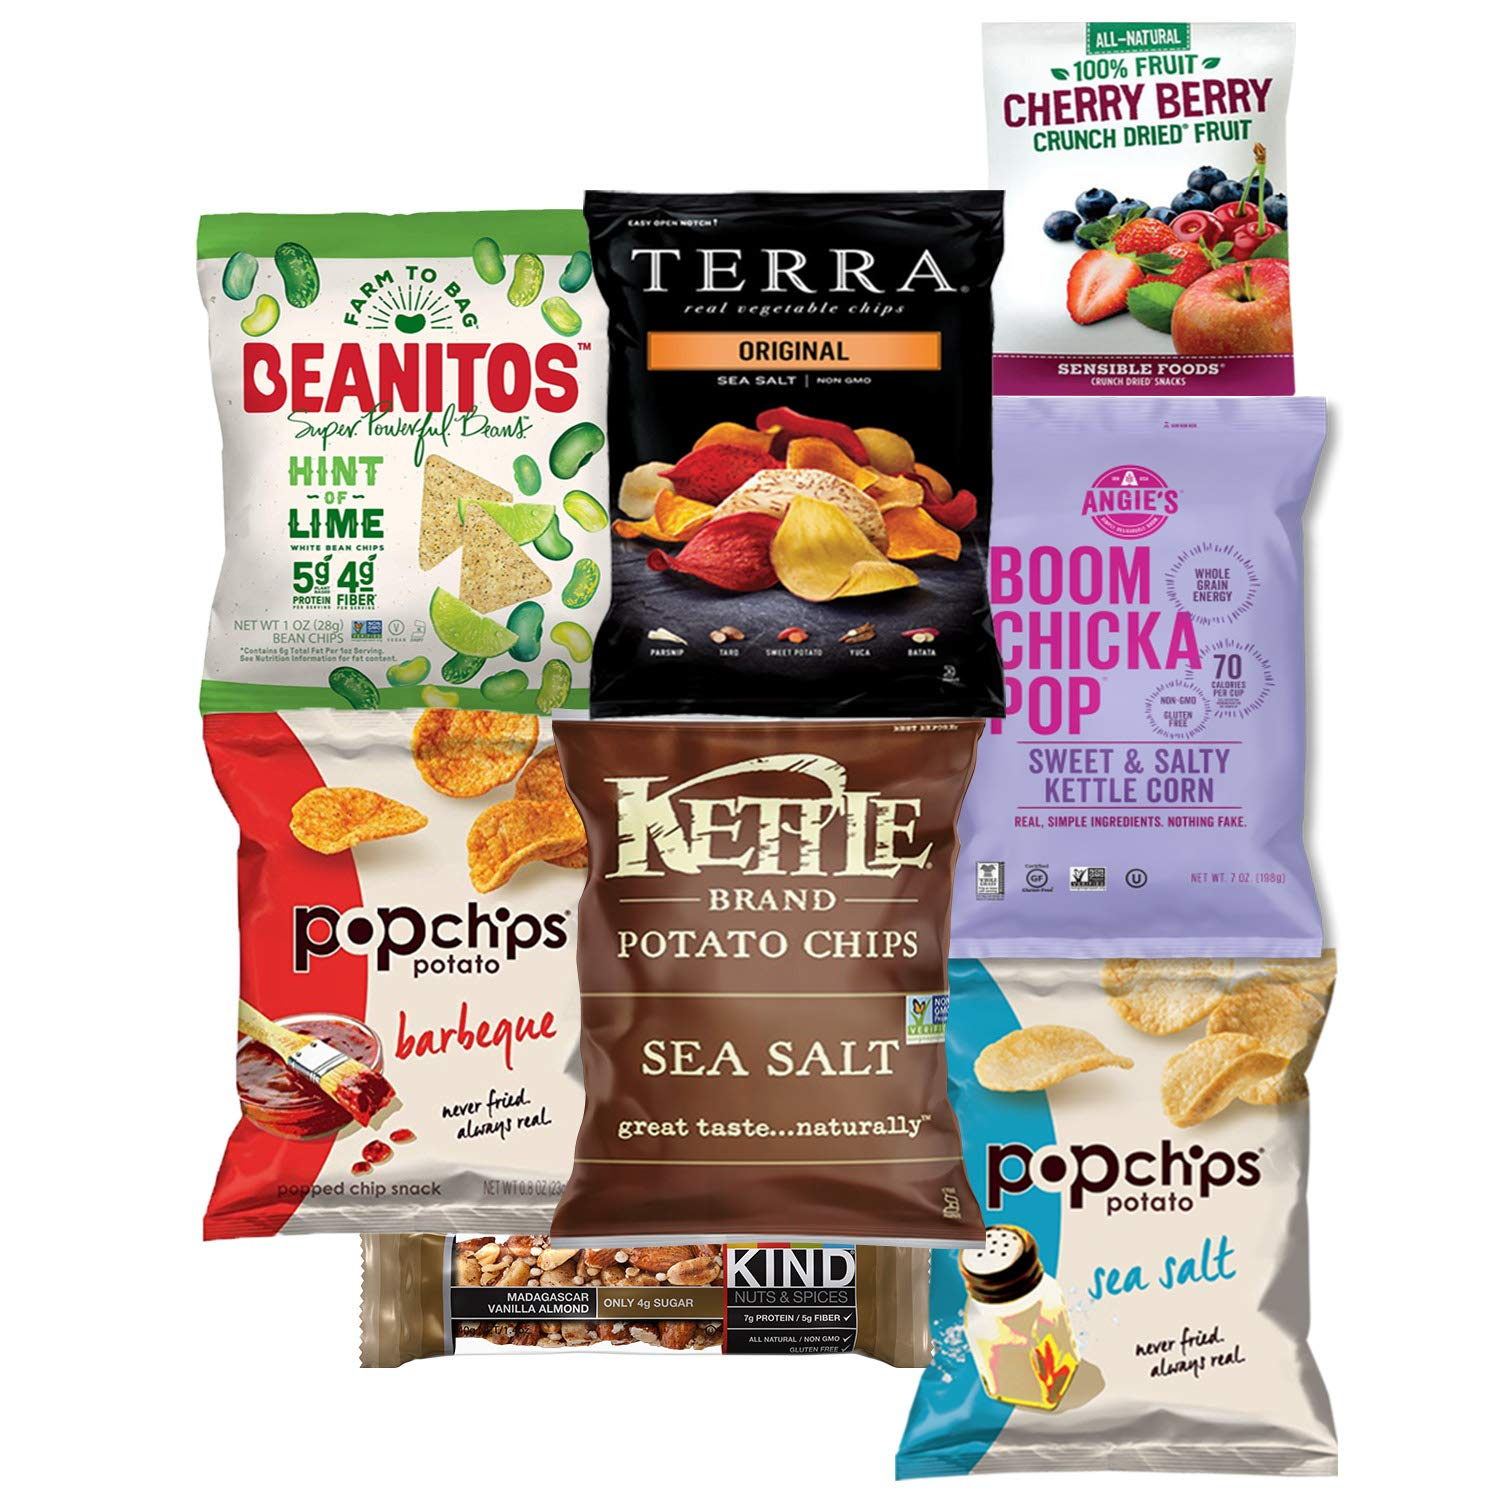 Premium NON GMO & Gluten Free Gourmet Healthy Snacks Gift Box Care Package Variety Pack (15 Count) by Variety Fun by Custom Varietea (Image #3)